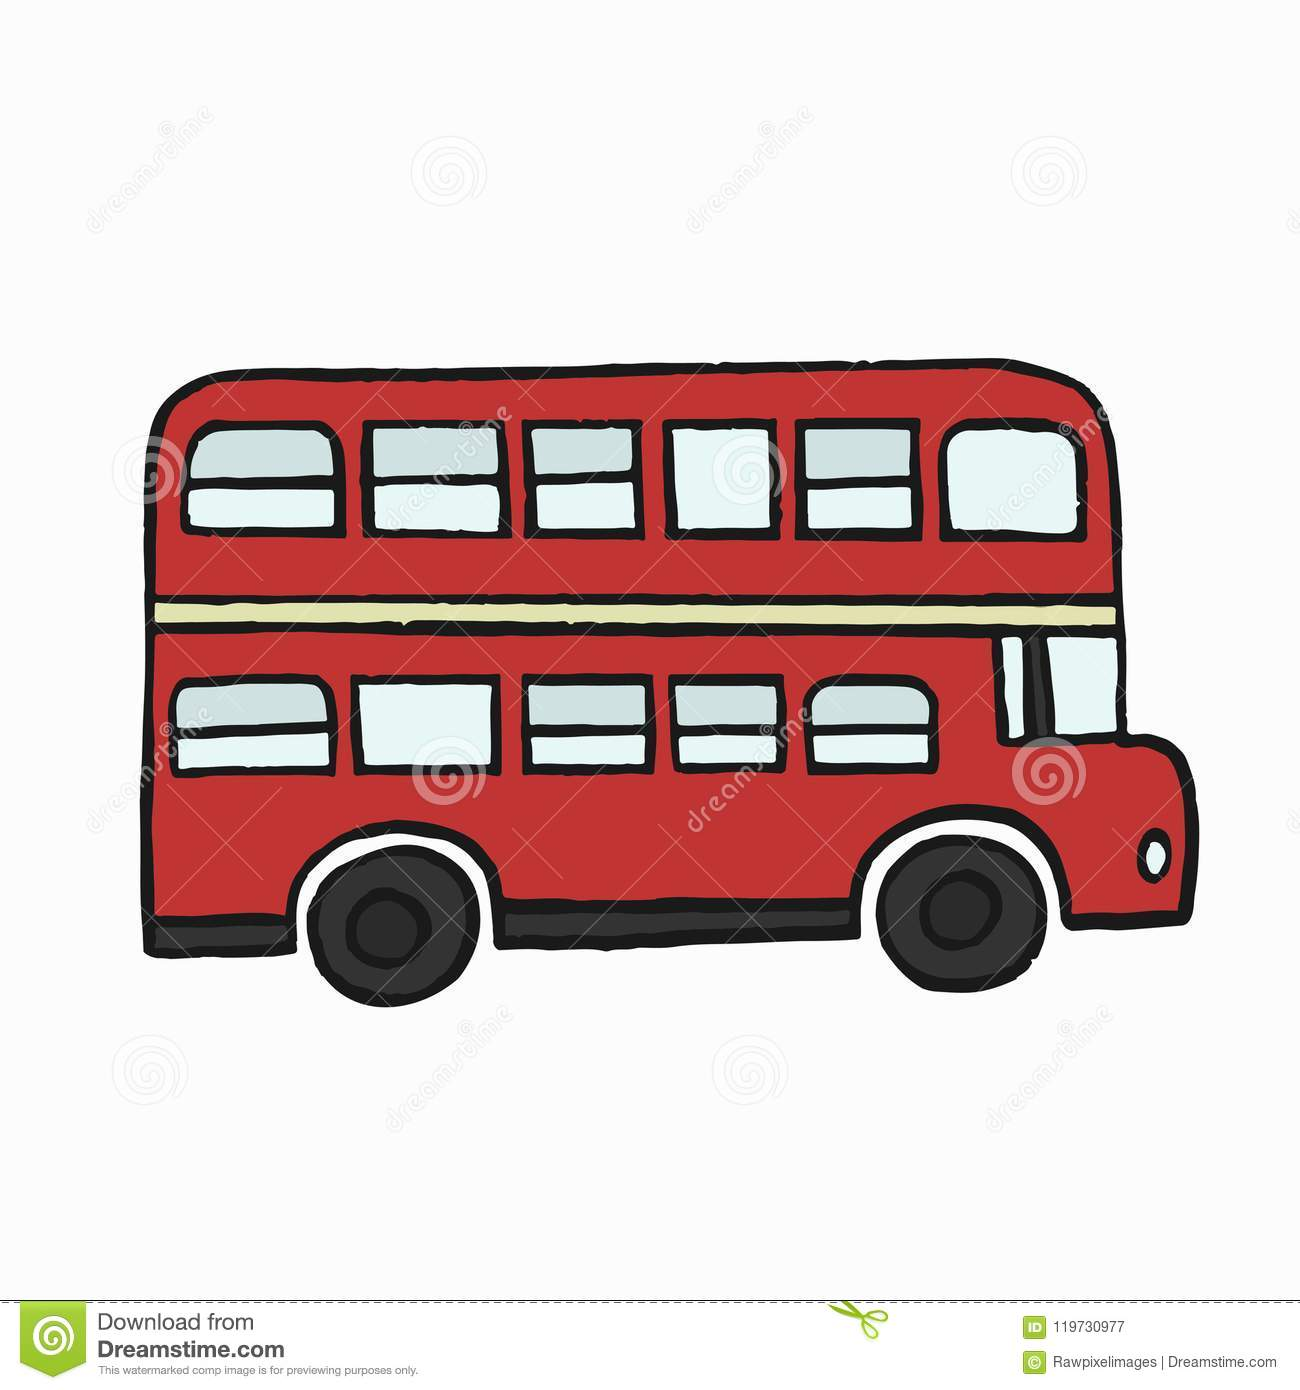 Red Double Decker London Bus Illustration Stock Illustration